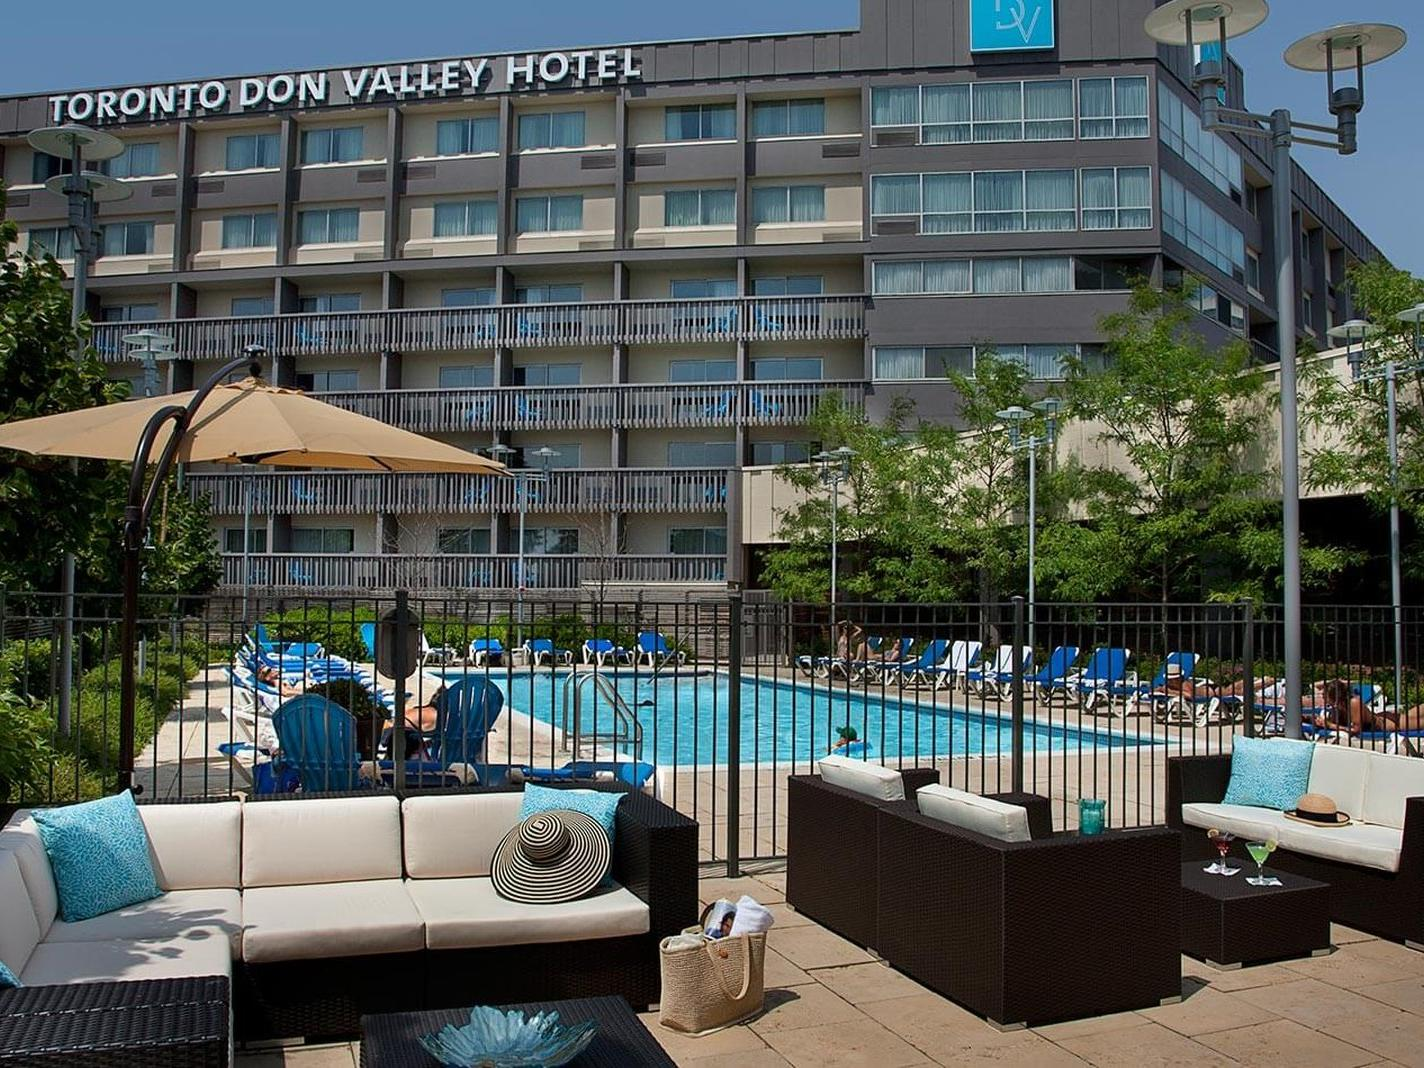 Outdoor pool at hotel in Toronto, ON